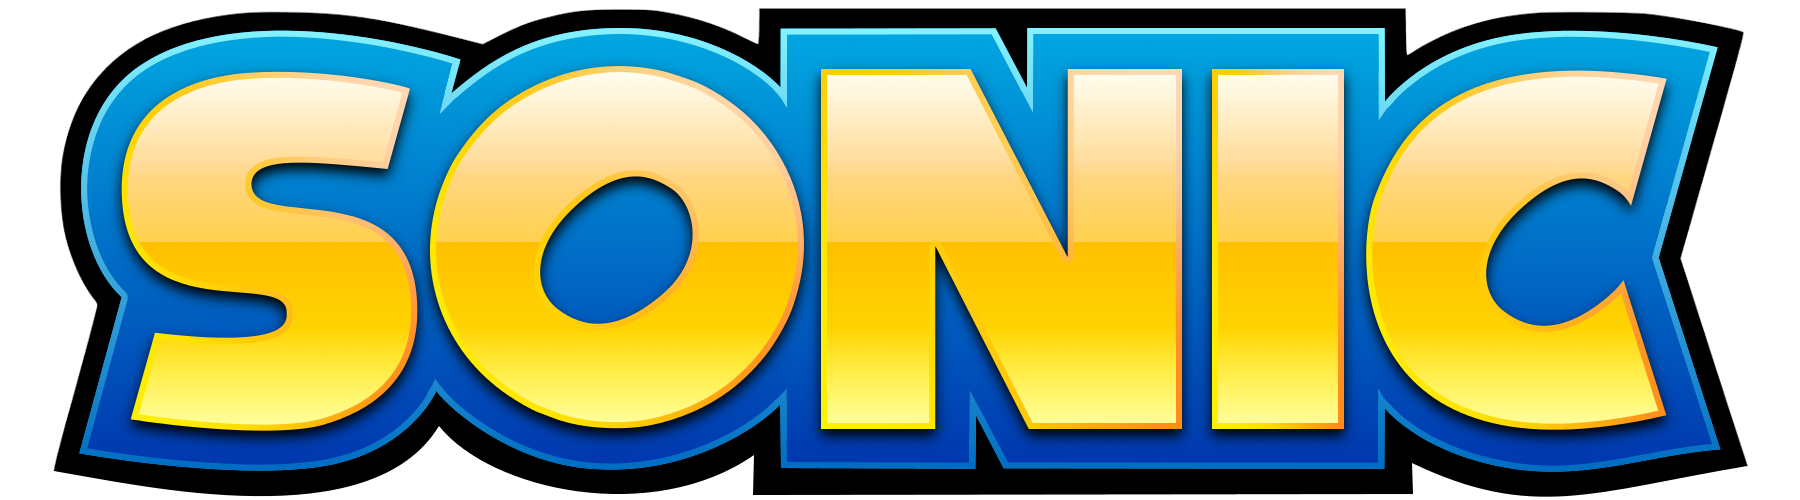 sonic logo lost worlds style by manmadeofgold on deviantart